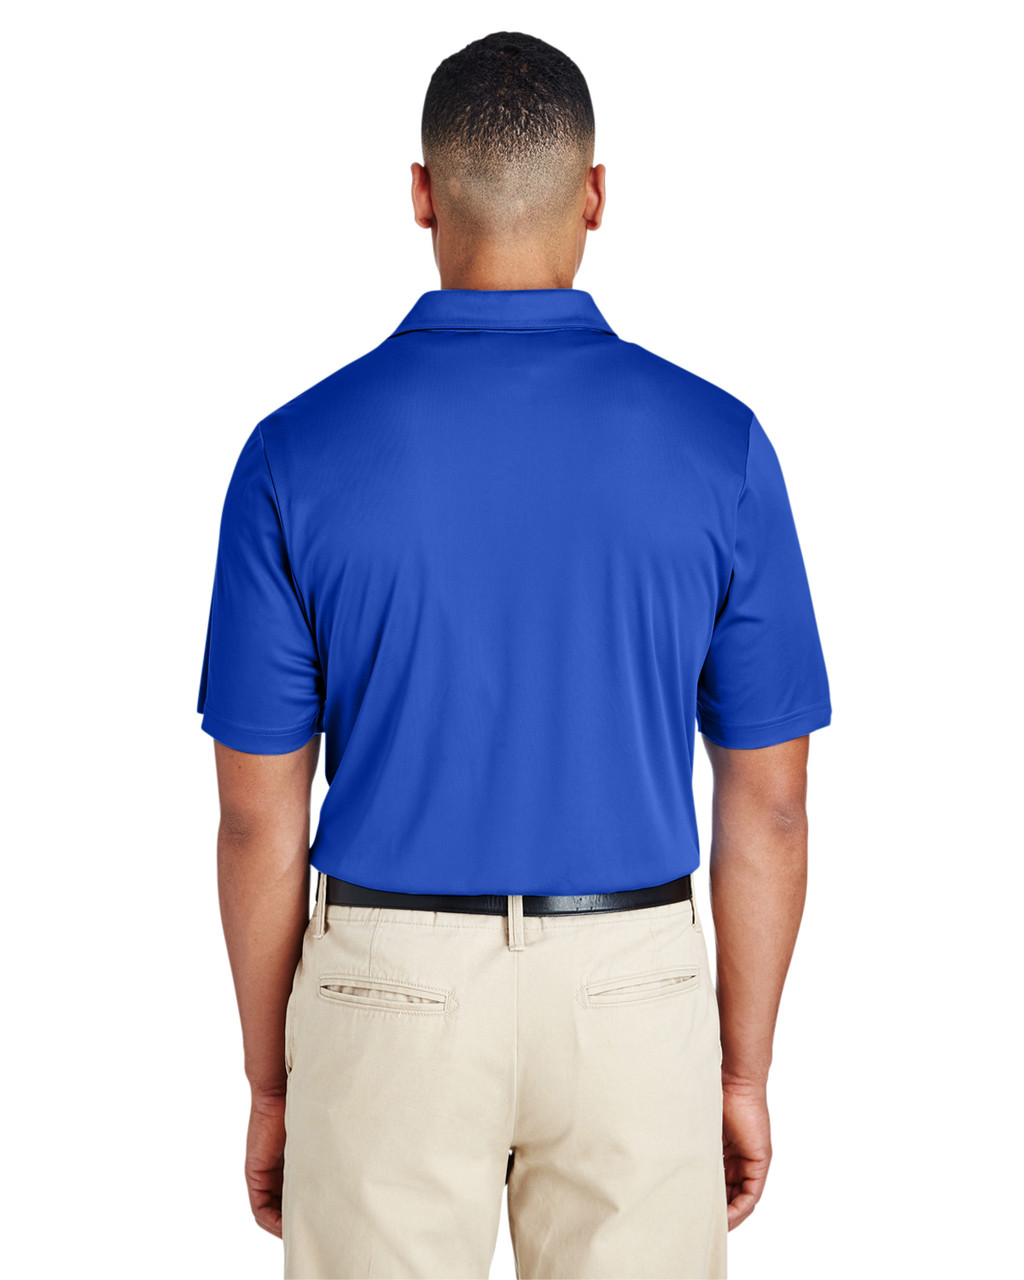 Sport Royal - TT51 Team 365 Men's Zone Performance Polo